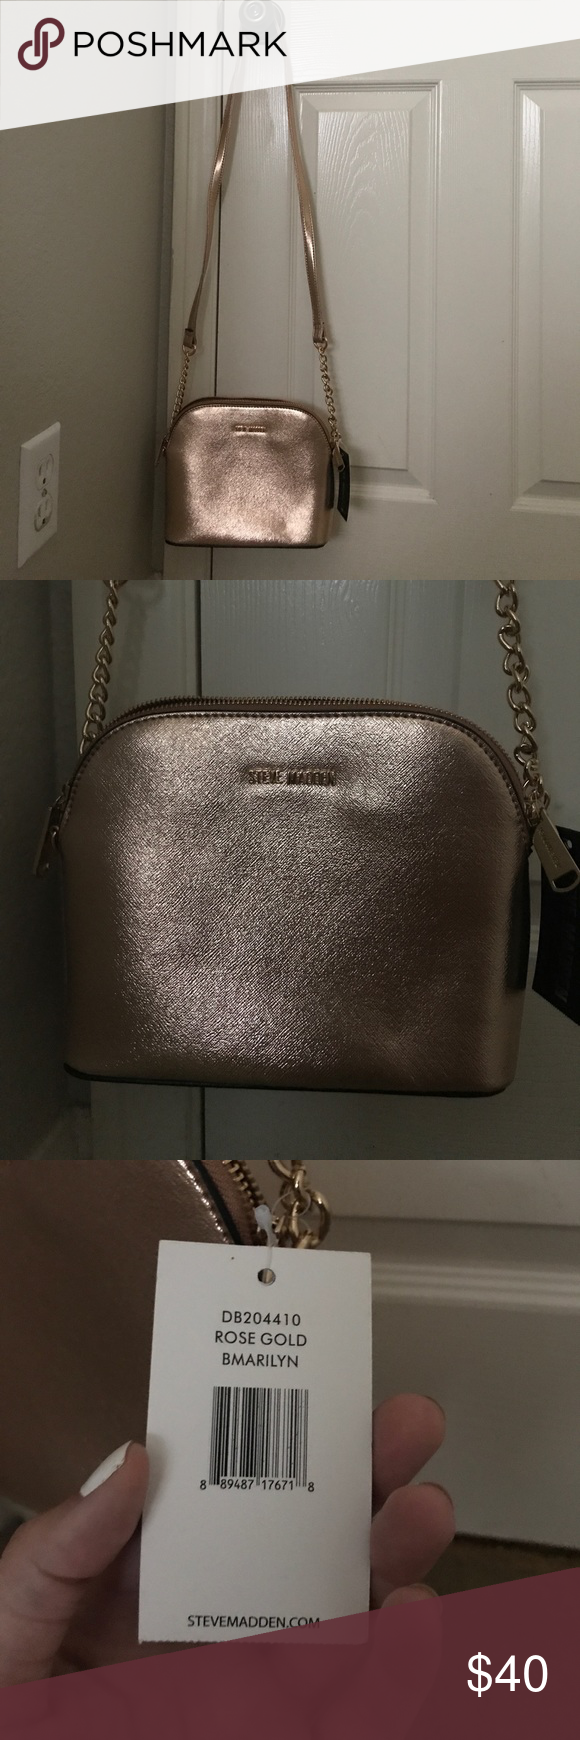 39400521ec NWT STEVE MADDEN ROSE GOLD CROSSBODY PURSE Brand new with tag. Rose gold.  Style is called 'bmarilyn.' Gold chain accent. Steve Madden Bags Crossbody  Bags